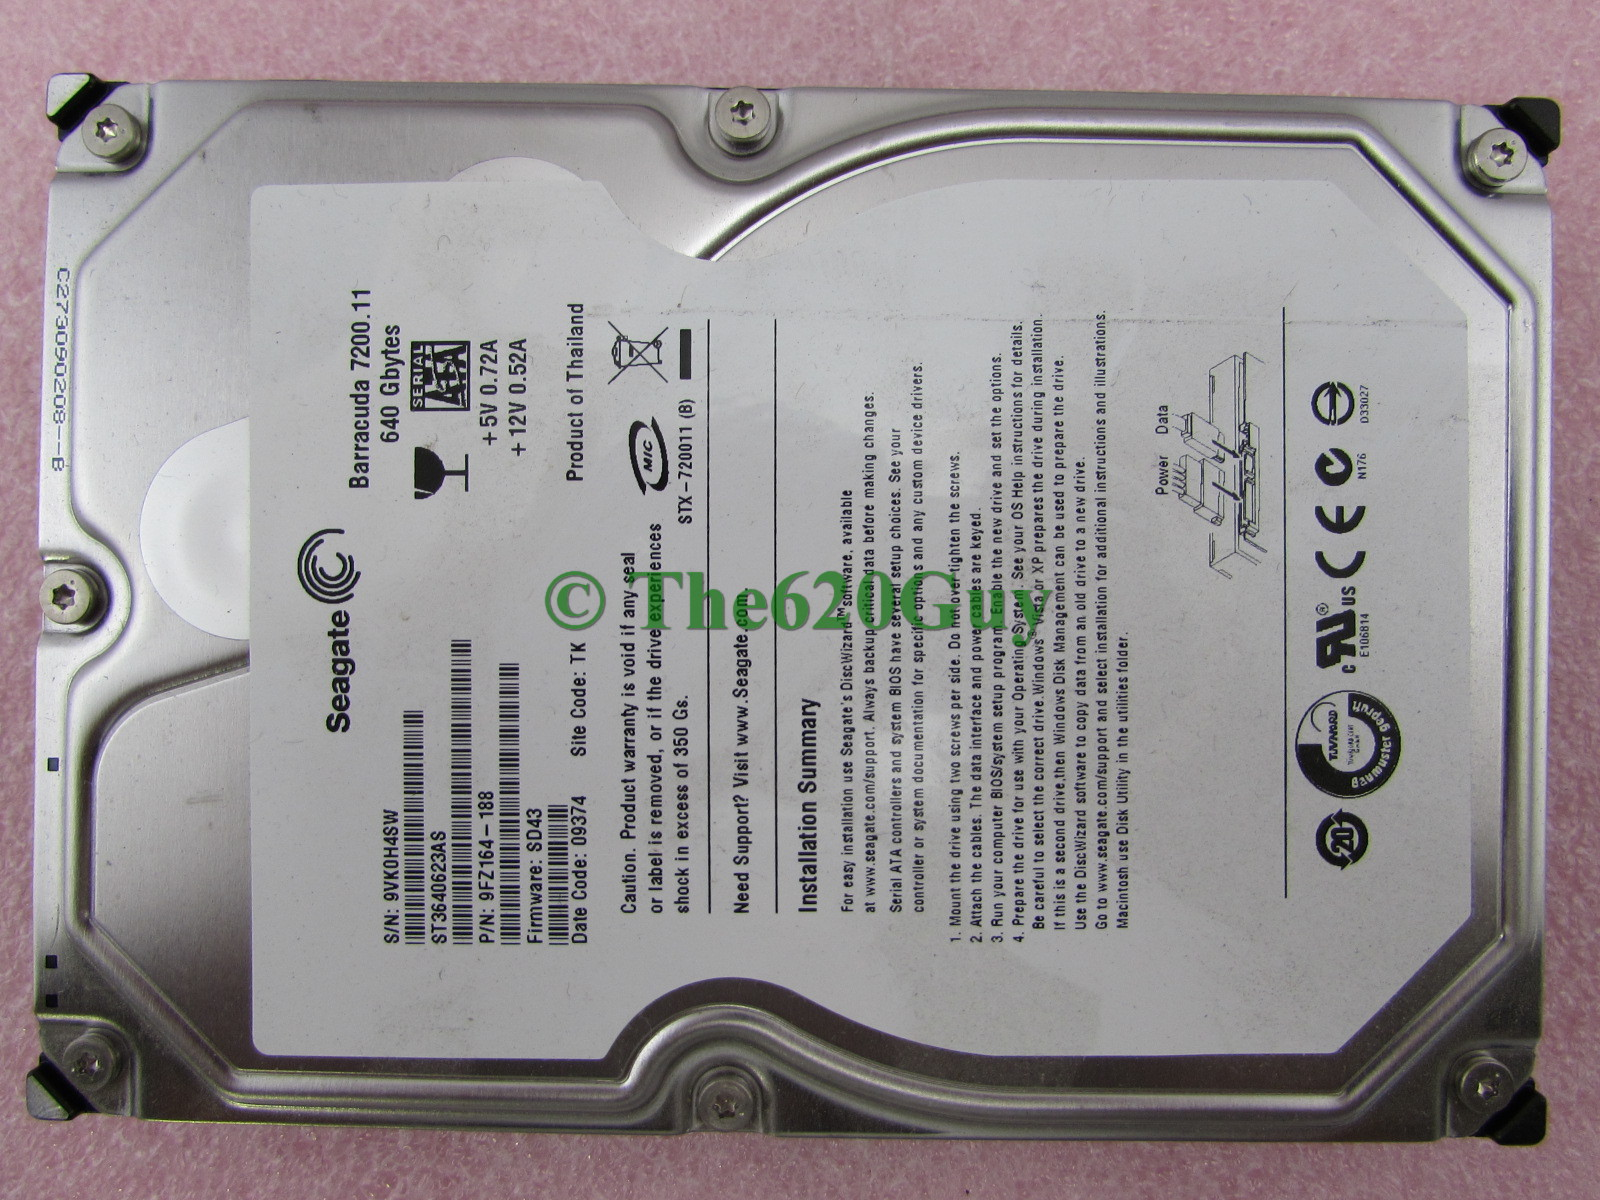 Seagate Barracuda 7200.11 ST3640623AS HDD 64 BIT Driver